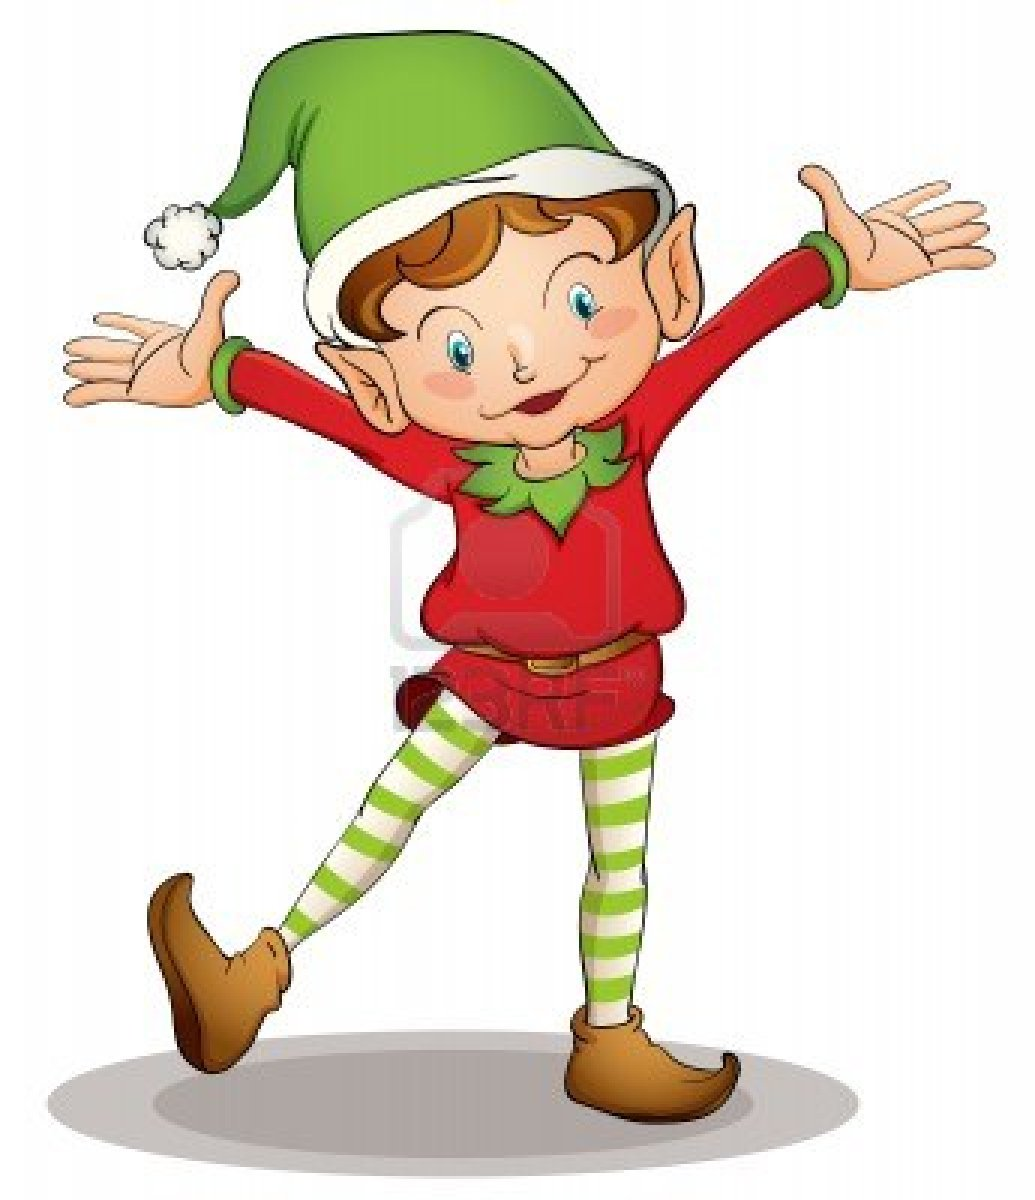 cute elf clipart at getdrawings com free for personal use cute elf rh getdrawings com clipart elvis presley's music is a day wasted clip art elvis presley